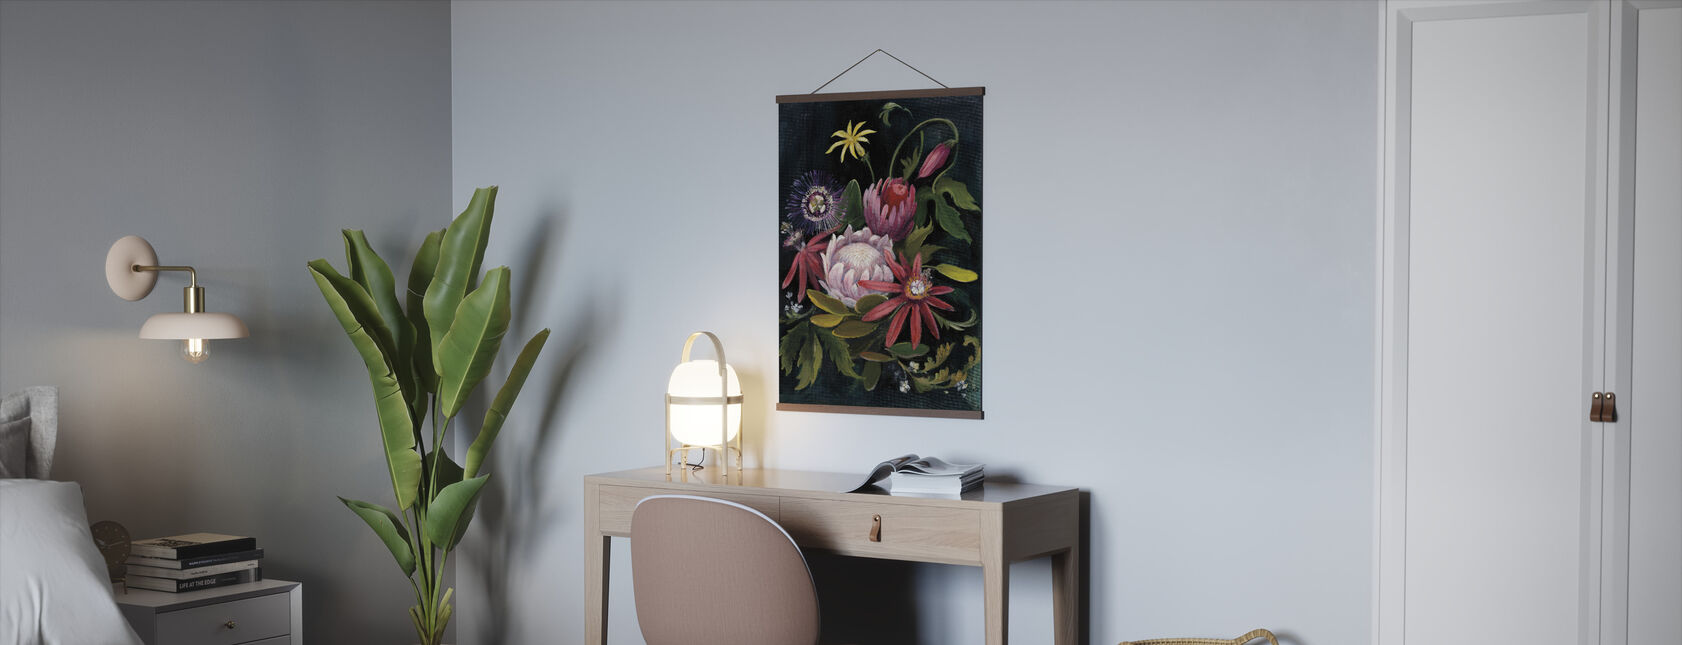 Flower Show II - Poster - Office